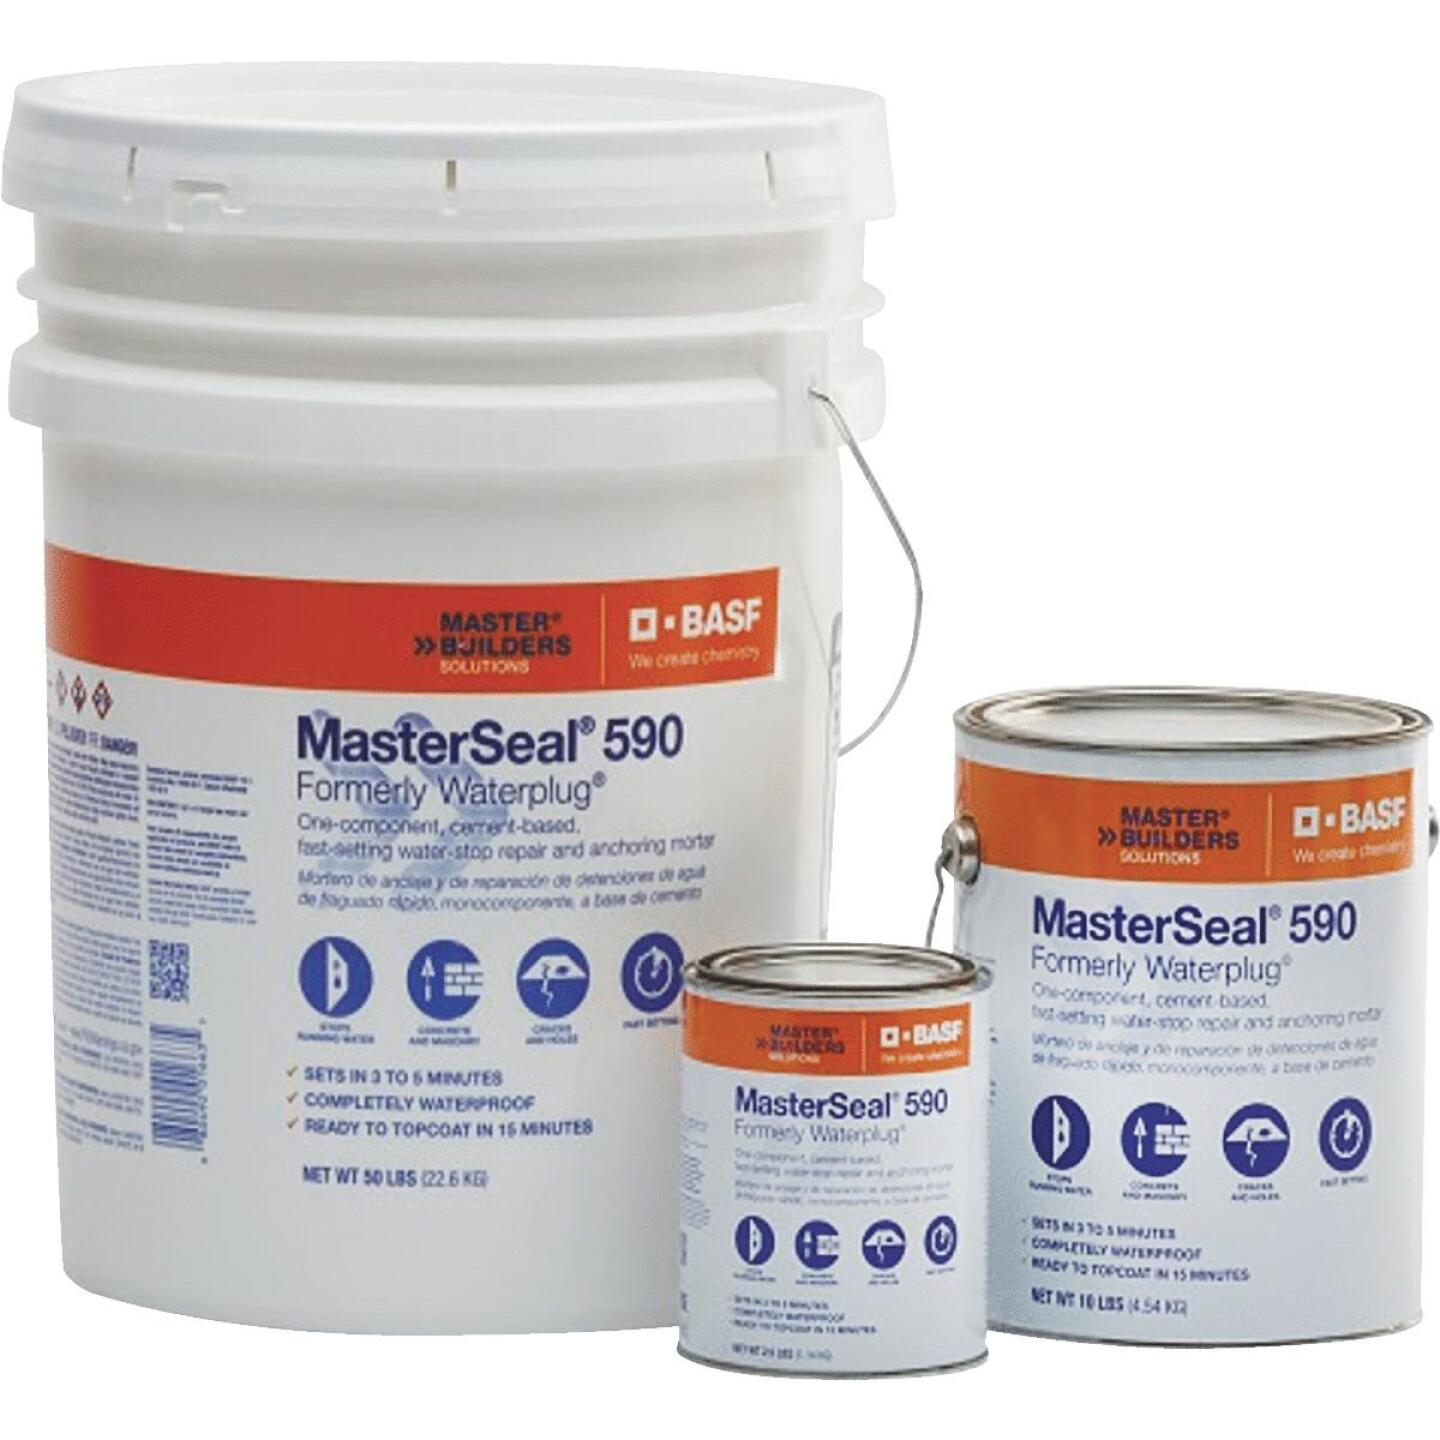 MasterSeal 590 50 Lb. Hydraulic Cement Image 2